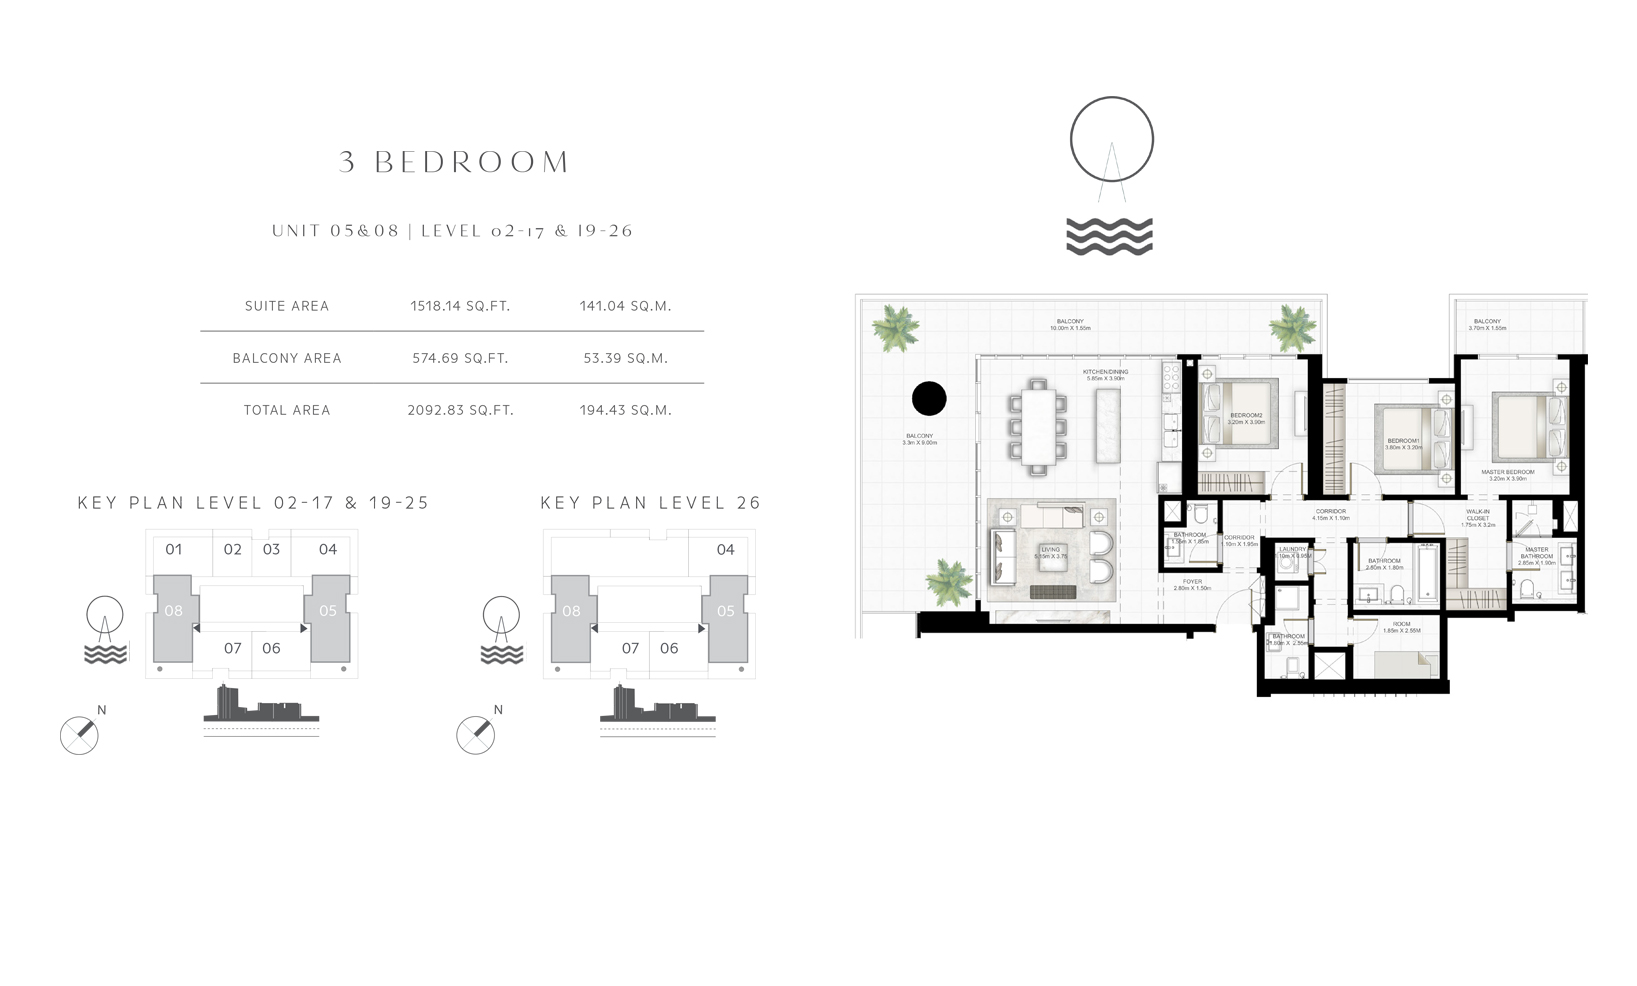 3 Bedroom Unit 05-08 Level 02-17 & 19-26 Size 2092.83 sq.ft